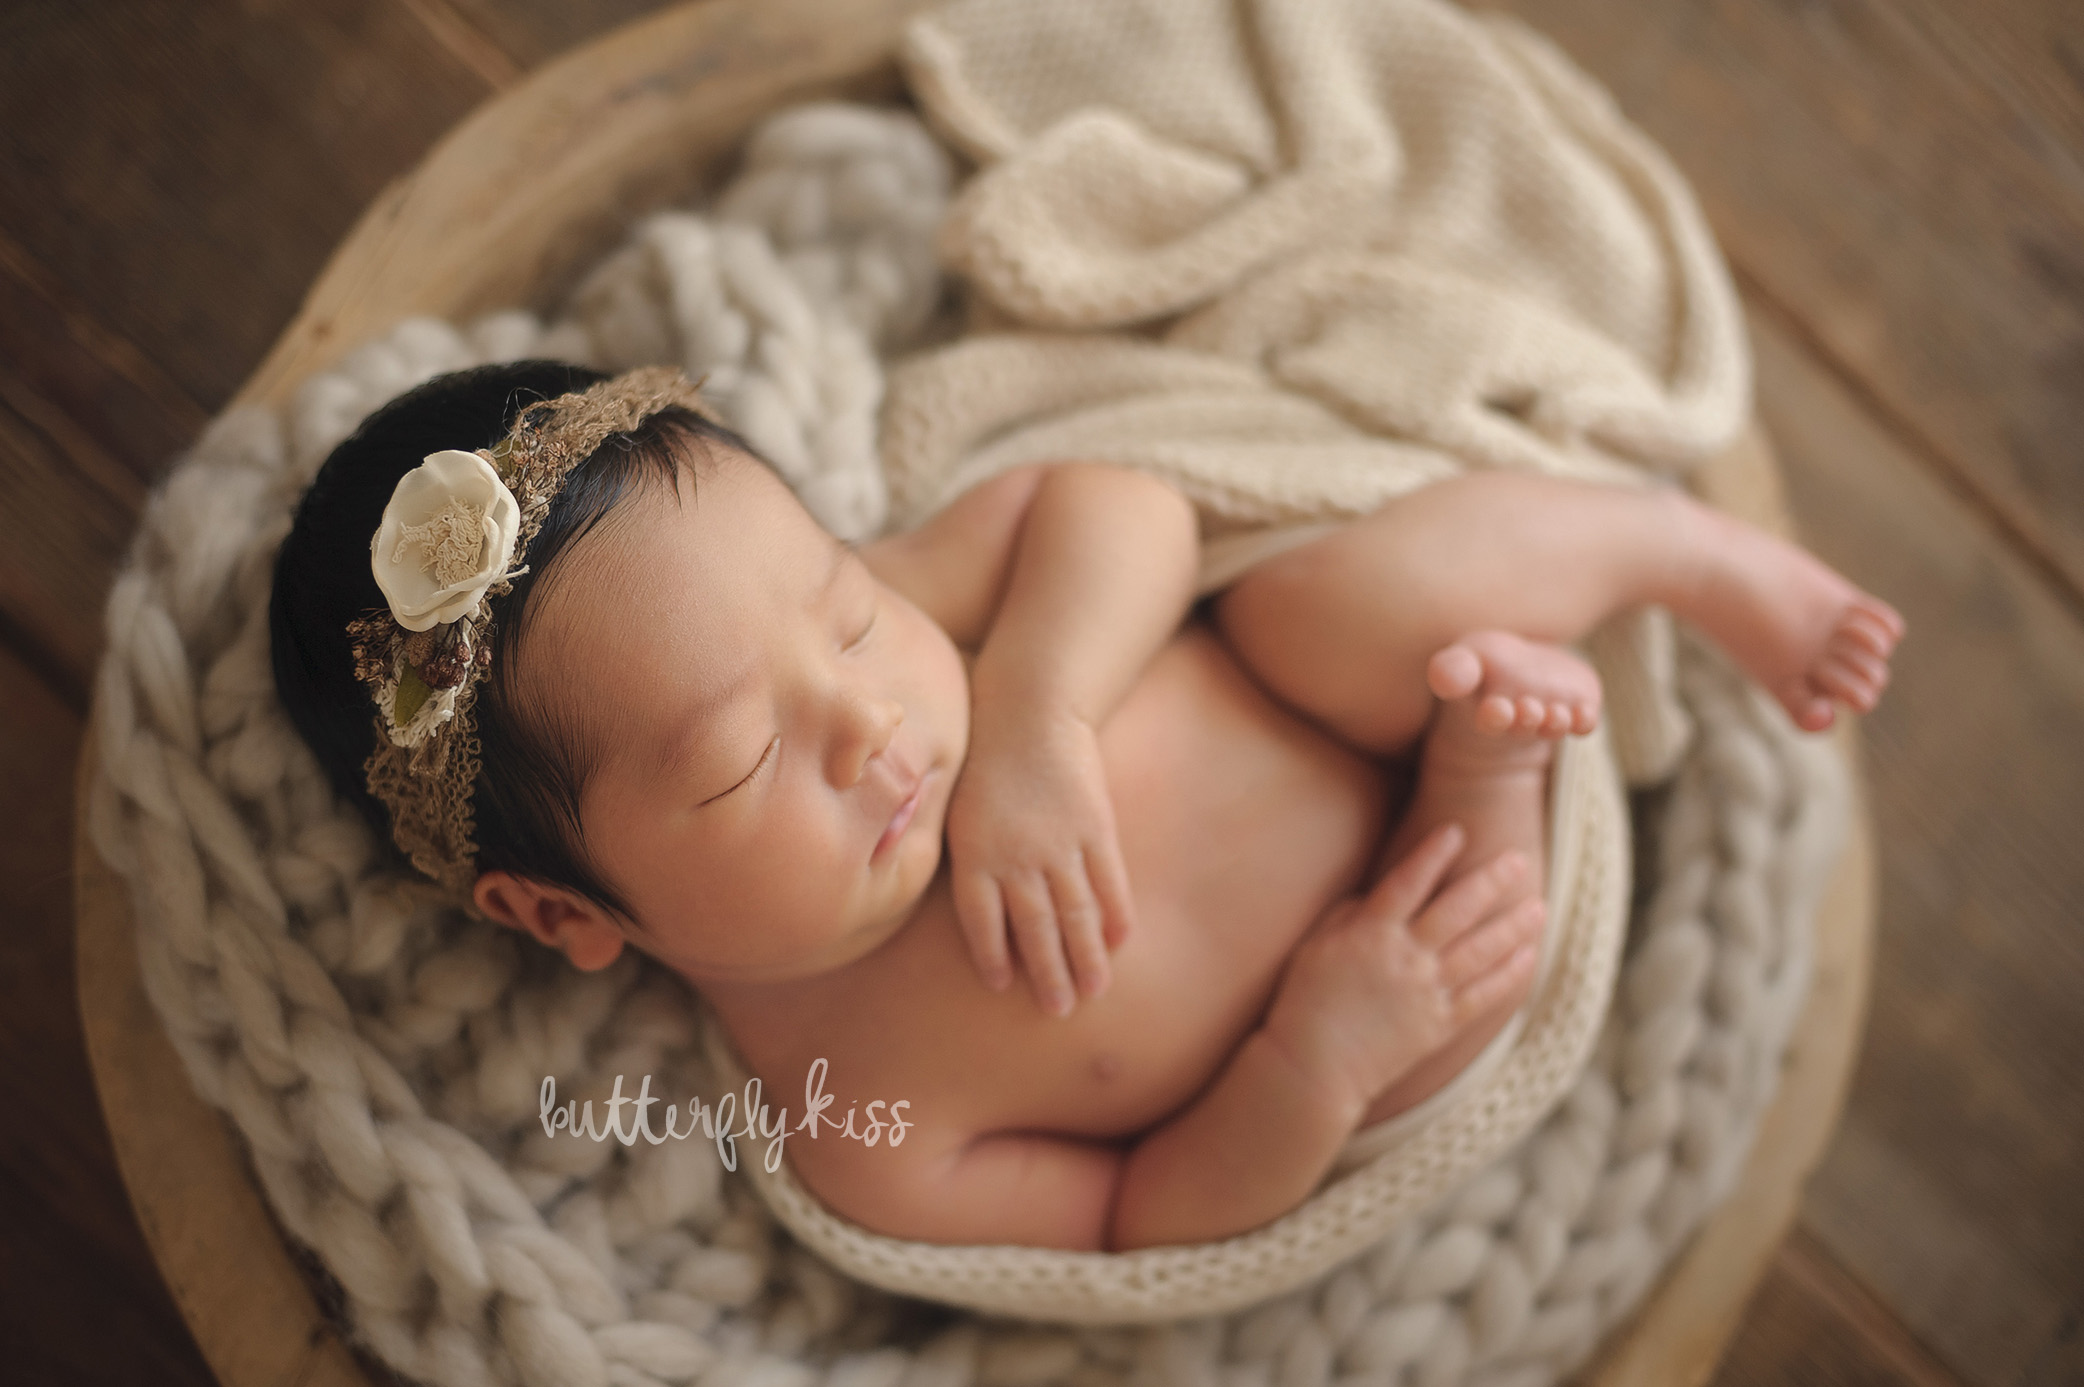 olympia newborn photographer wrapped pose inspiration in wood bwol with knit layers organic natural soft cream earth tone neutral cocoa headband tieback ethnic baby girl